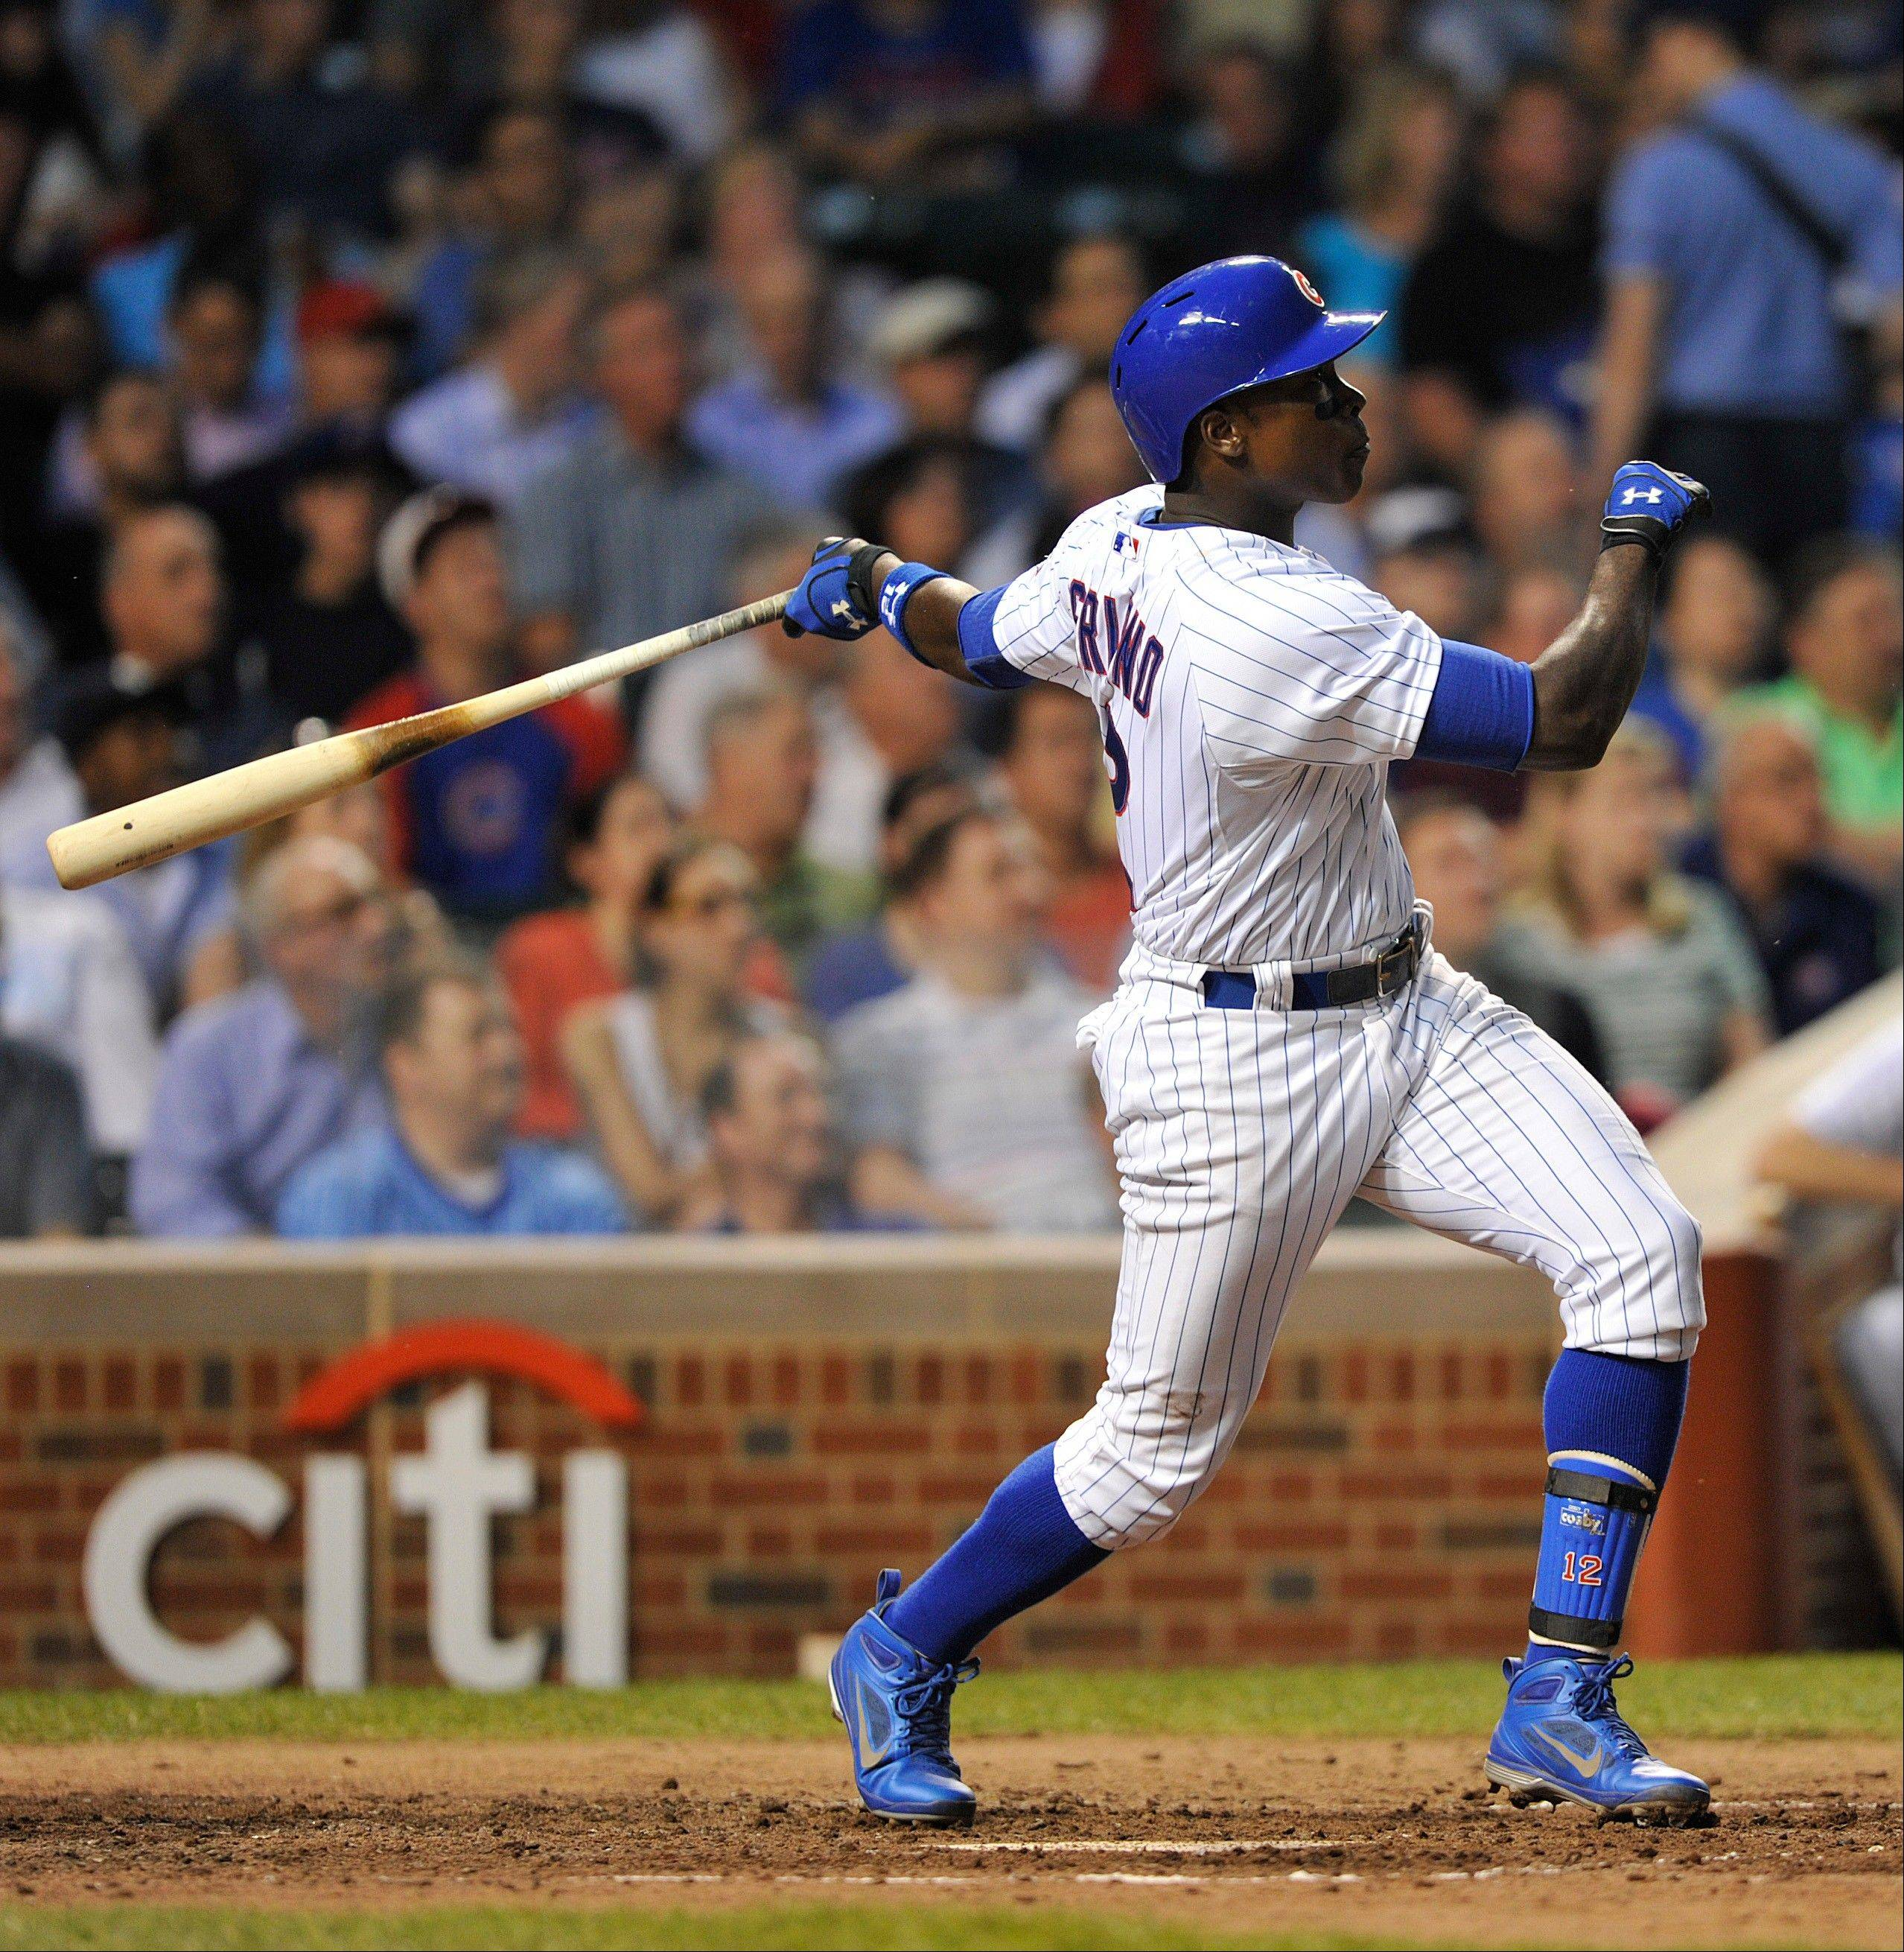 The Cubs' Alfonso Soriano watches his sacrifice fly against the Cincinnati Reds Tuesday at Wrigley Field. The Cubs lost 12-2.